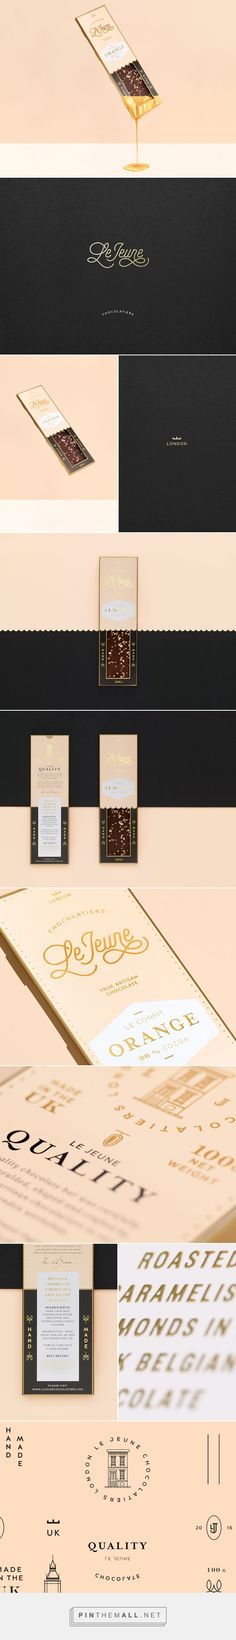 LE JEUNE Chocolatiers by Studio Chapeaux. Source. Behance. Pin curated by #SFields99 #packaging #design #inspiration #chocolate #premium #artisan